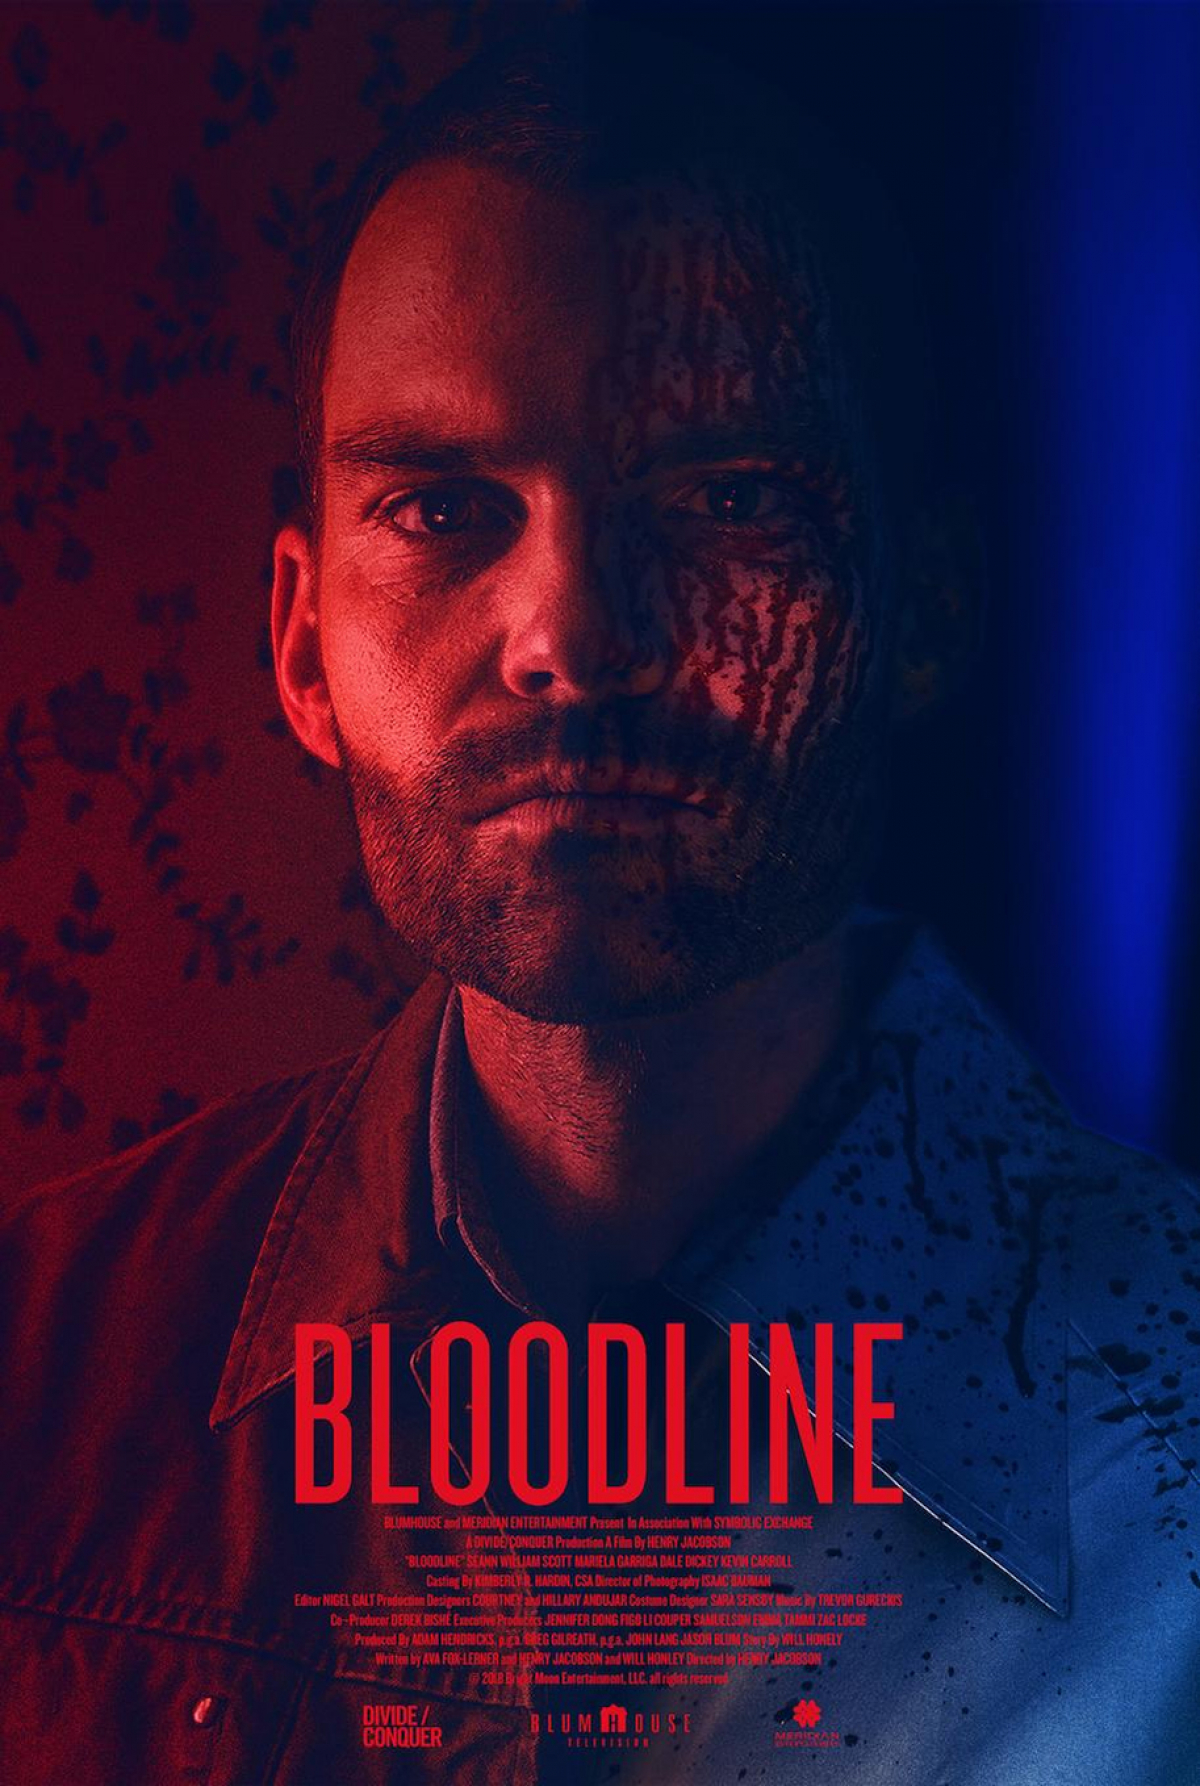 Bloodline Trailer & Poster